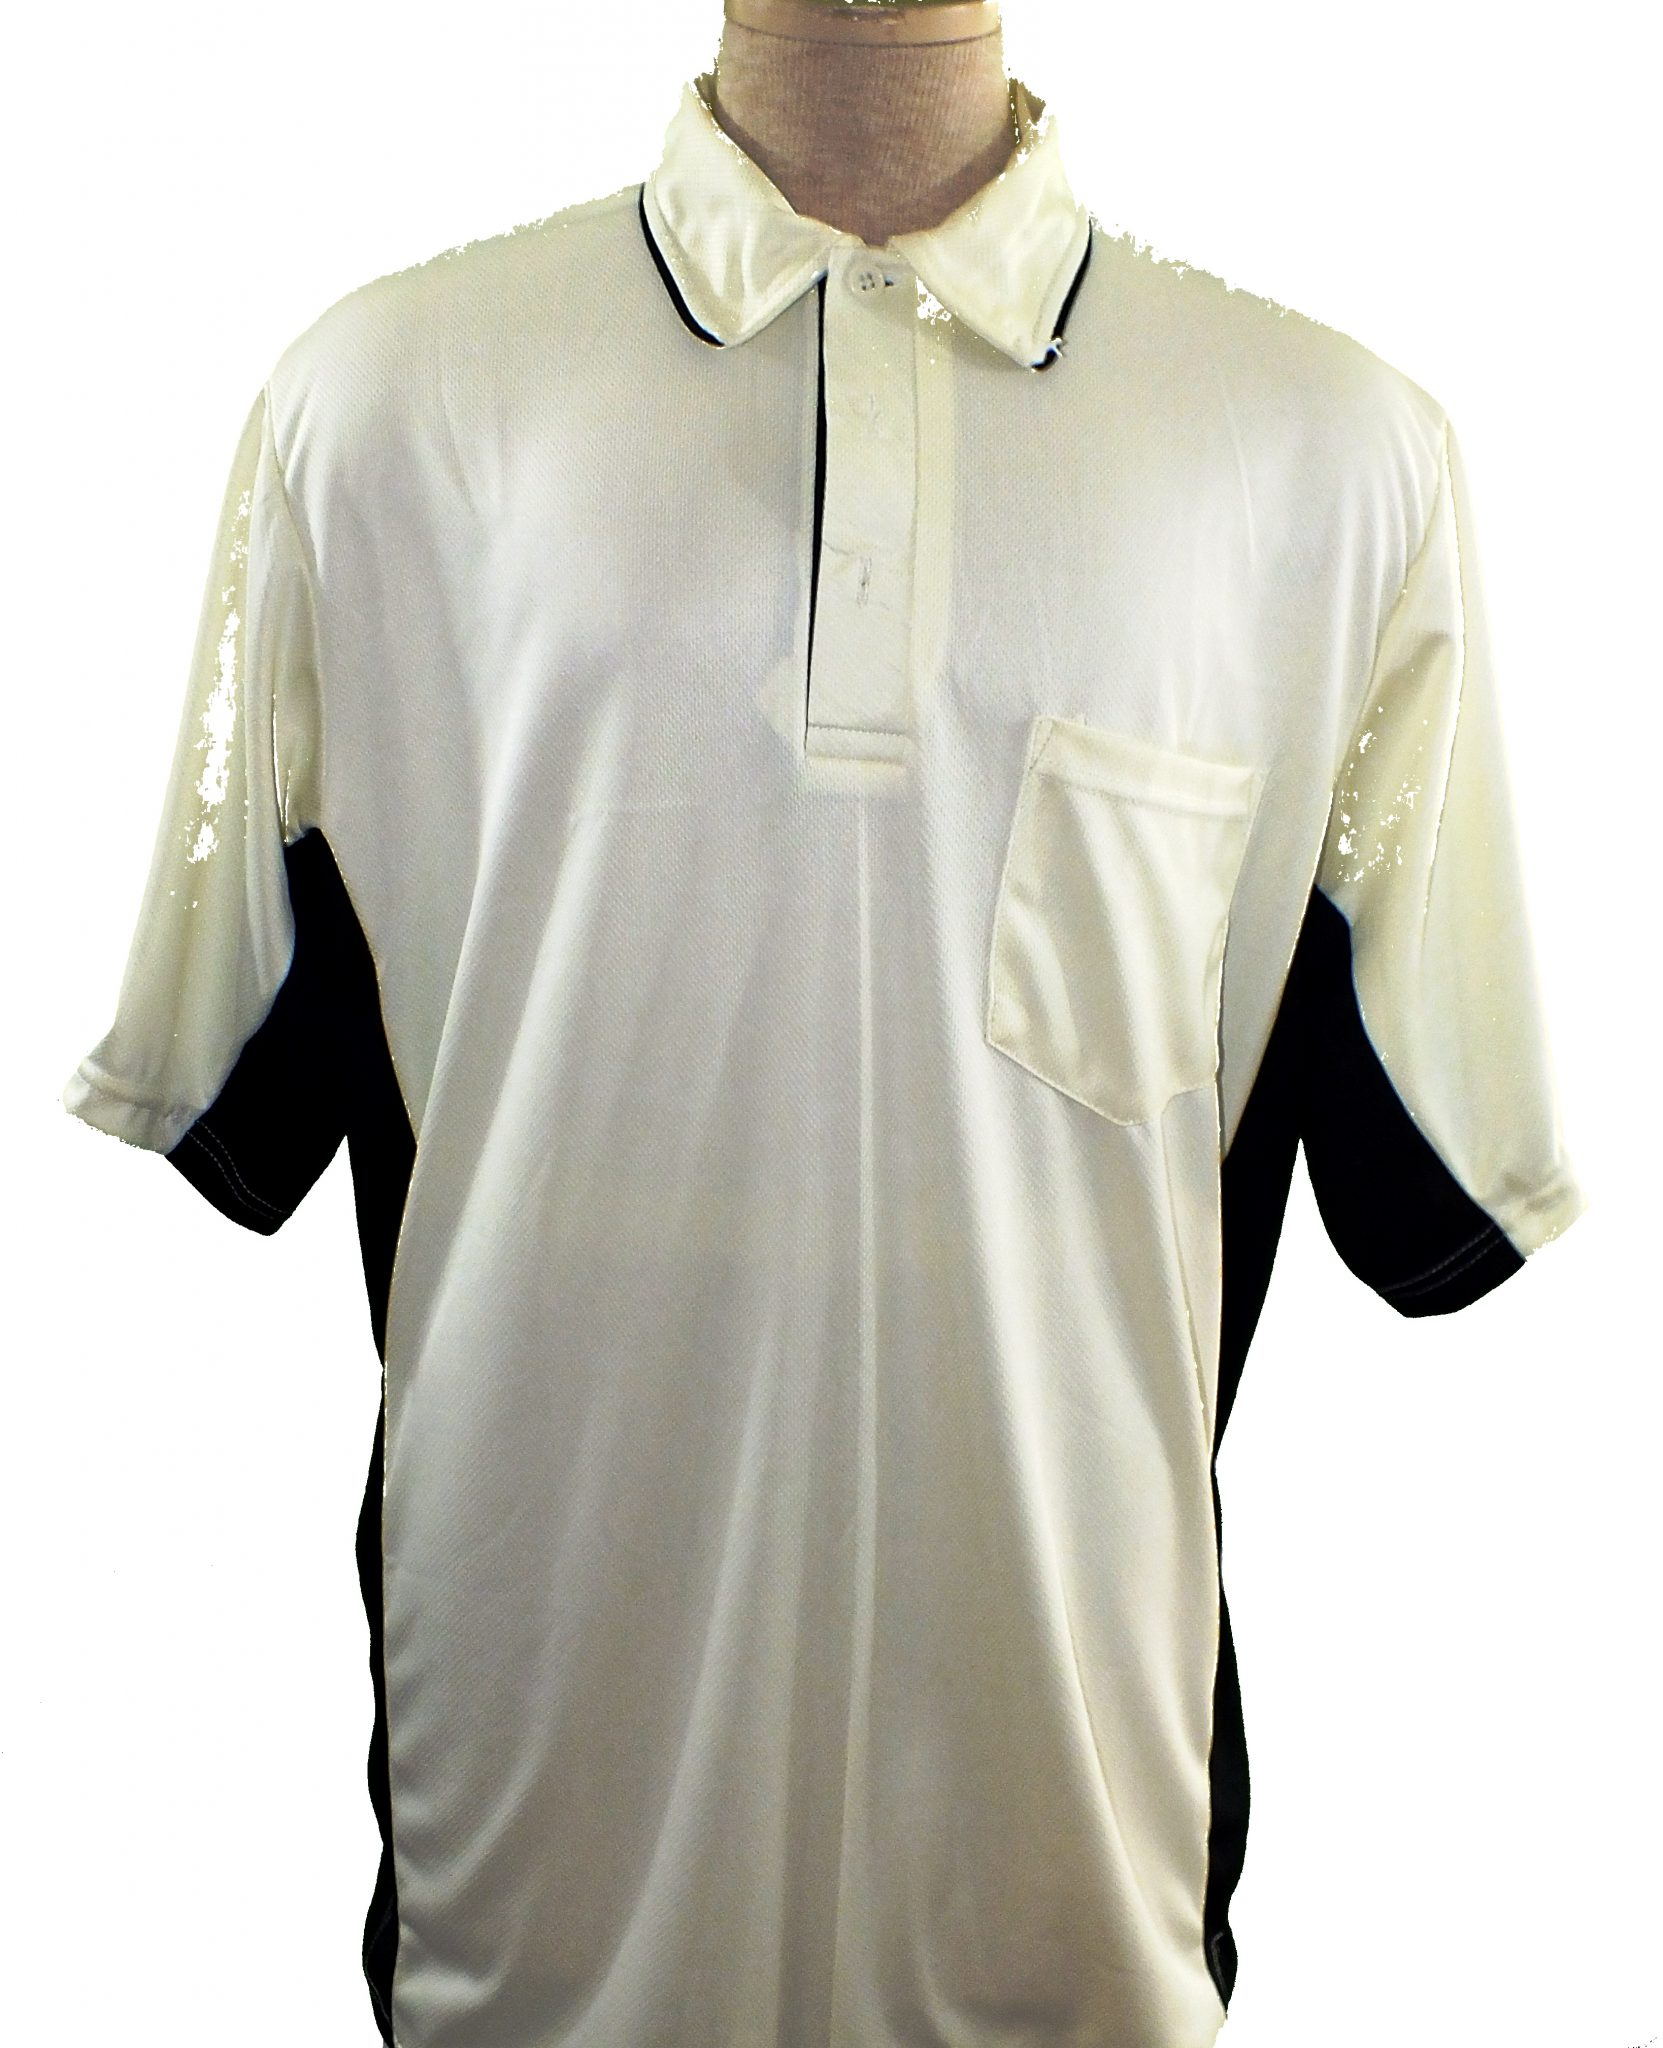 Modern Pro - Umpire Shirt (Cream)